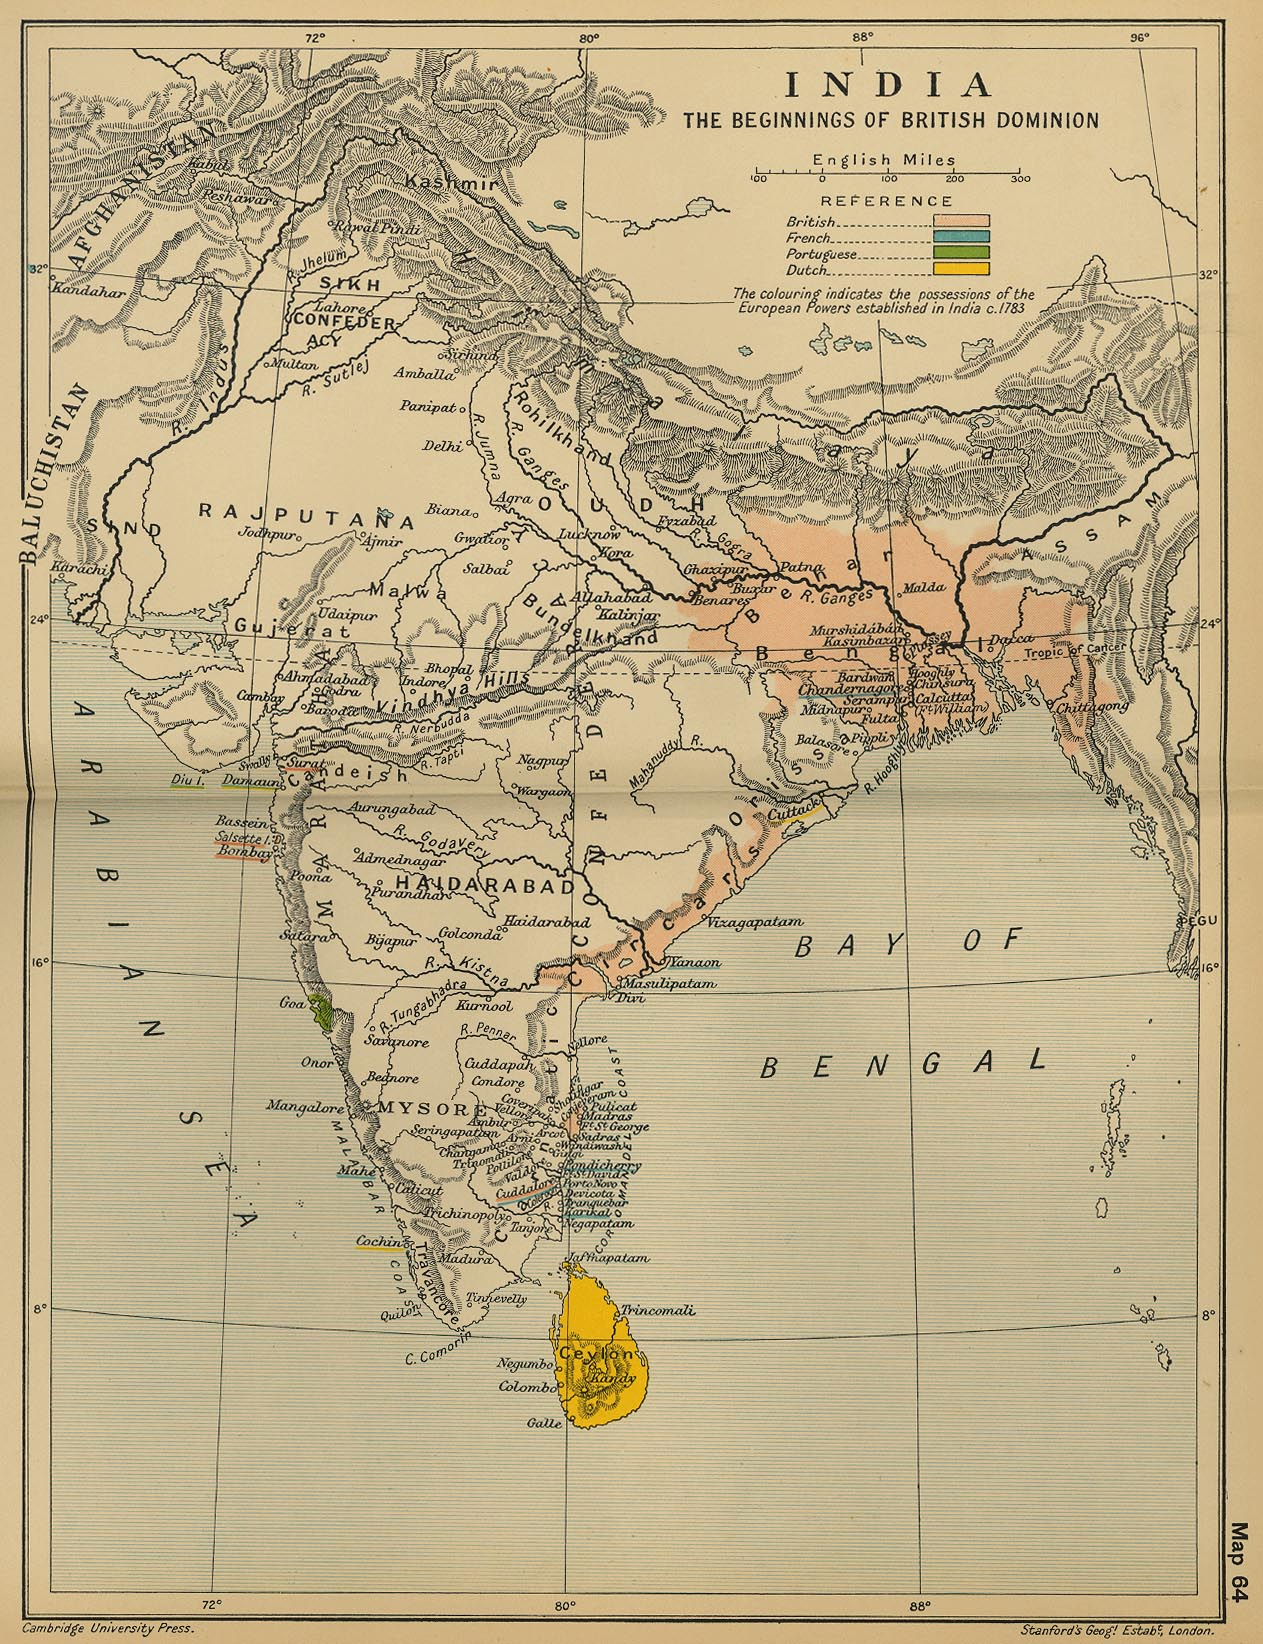 Map of India 1783: The Beginnings of the British Dominion